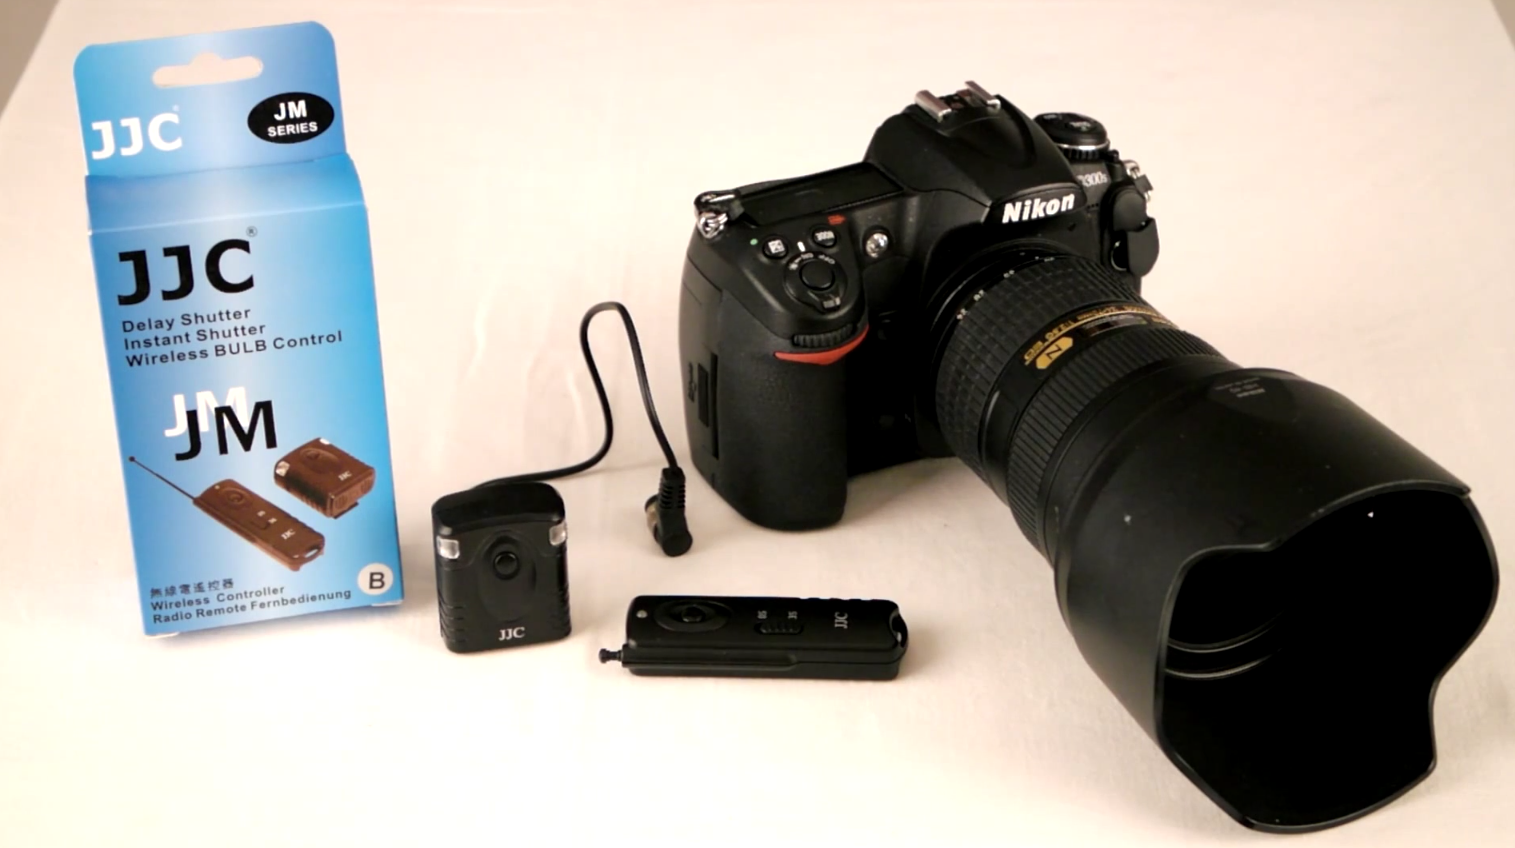 Review: The JJC wireless shutter release JM-B